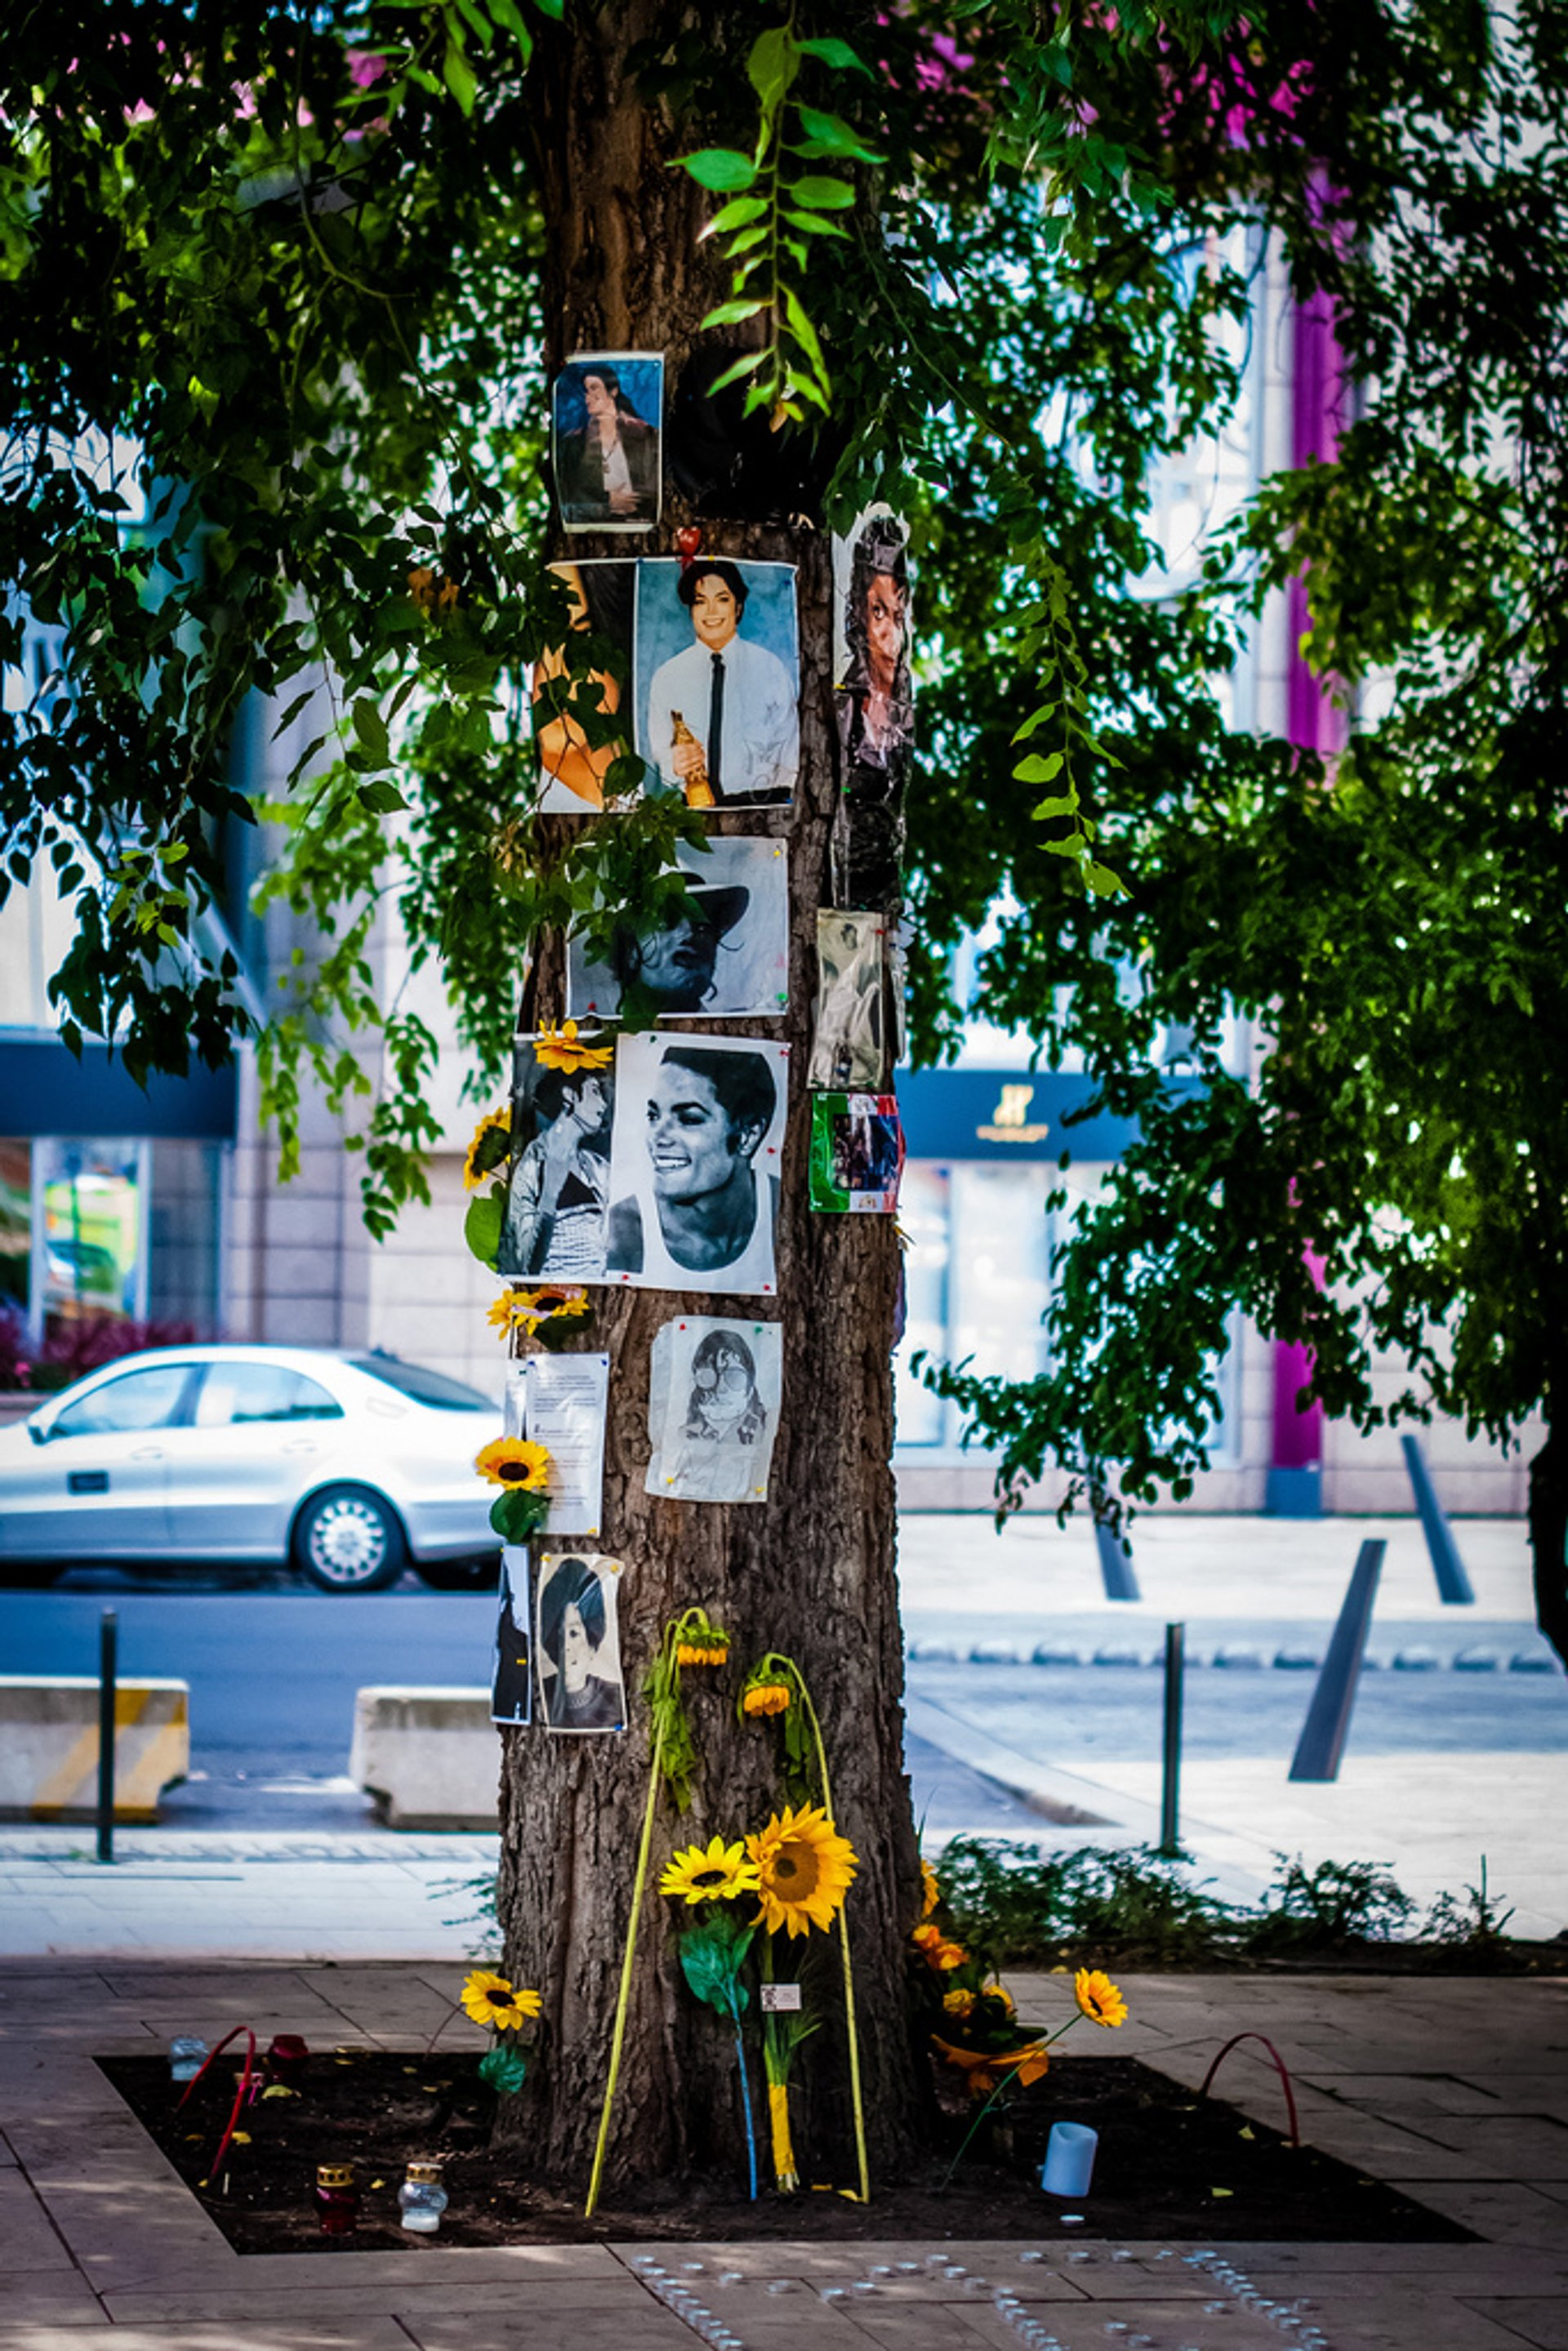 Michael Jackson Memorial Tree in Hungary - Best Season 2020